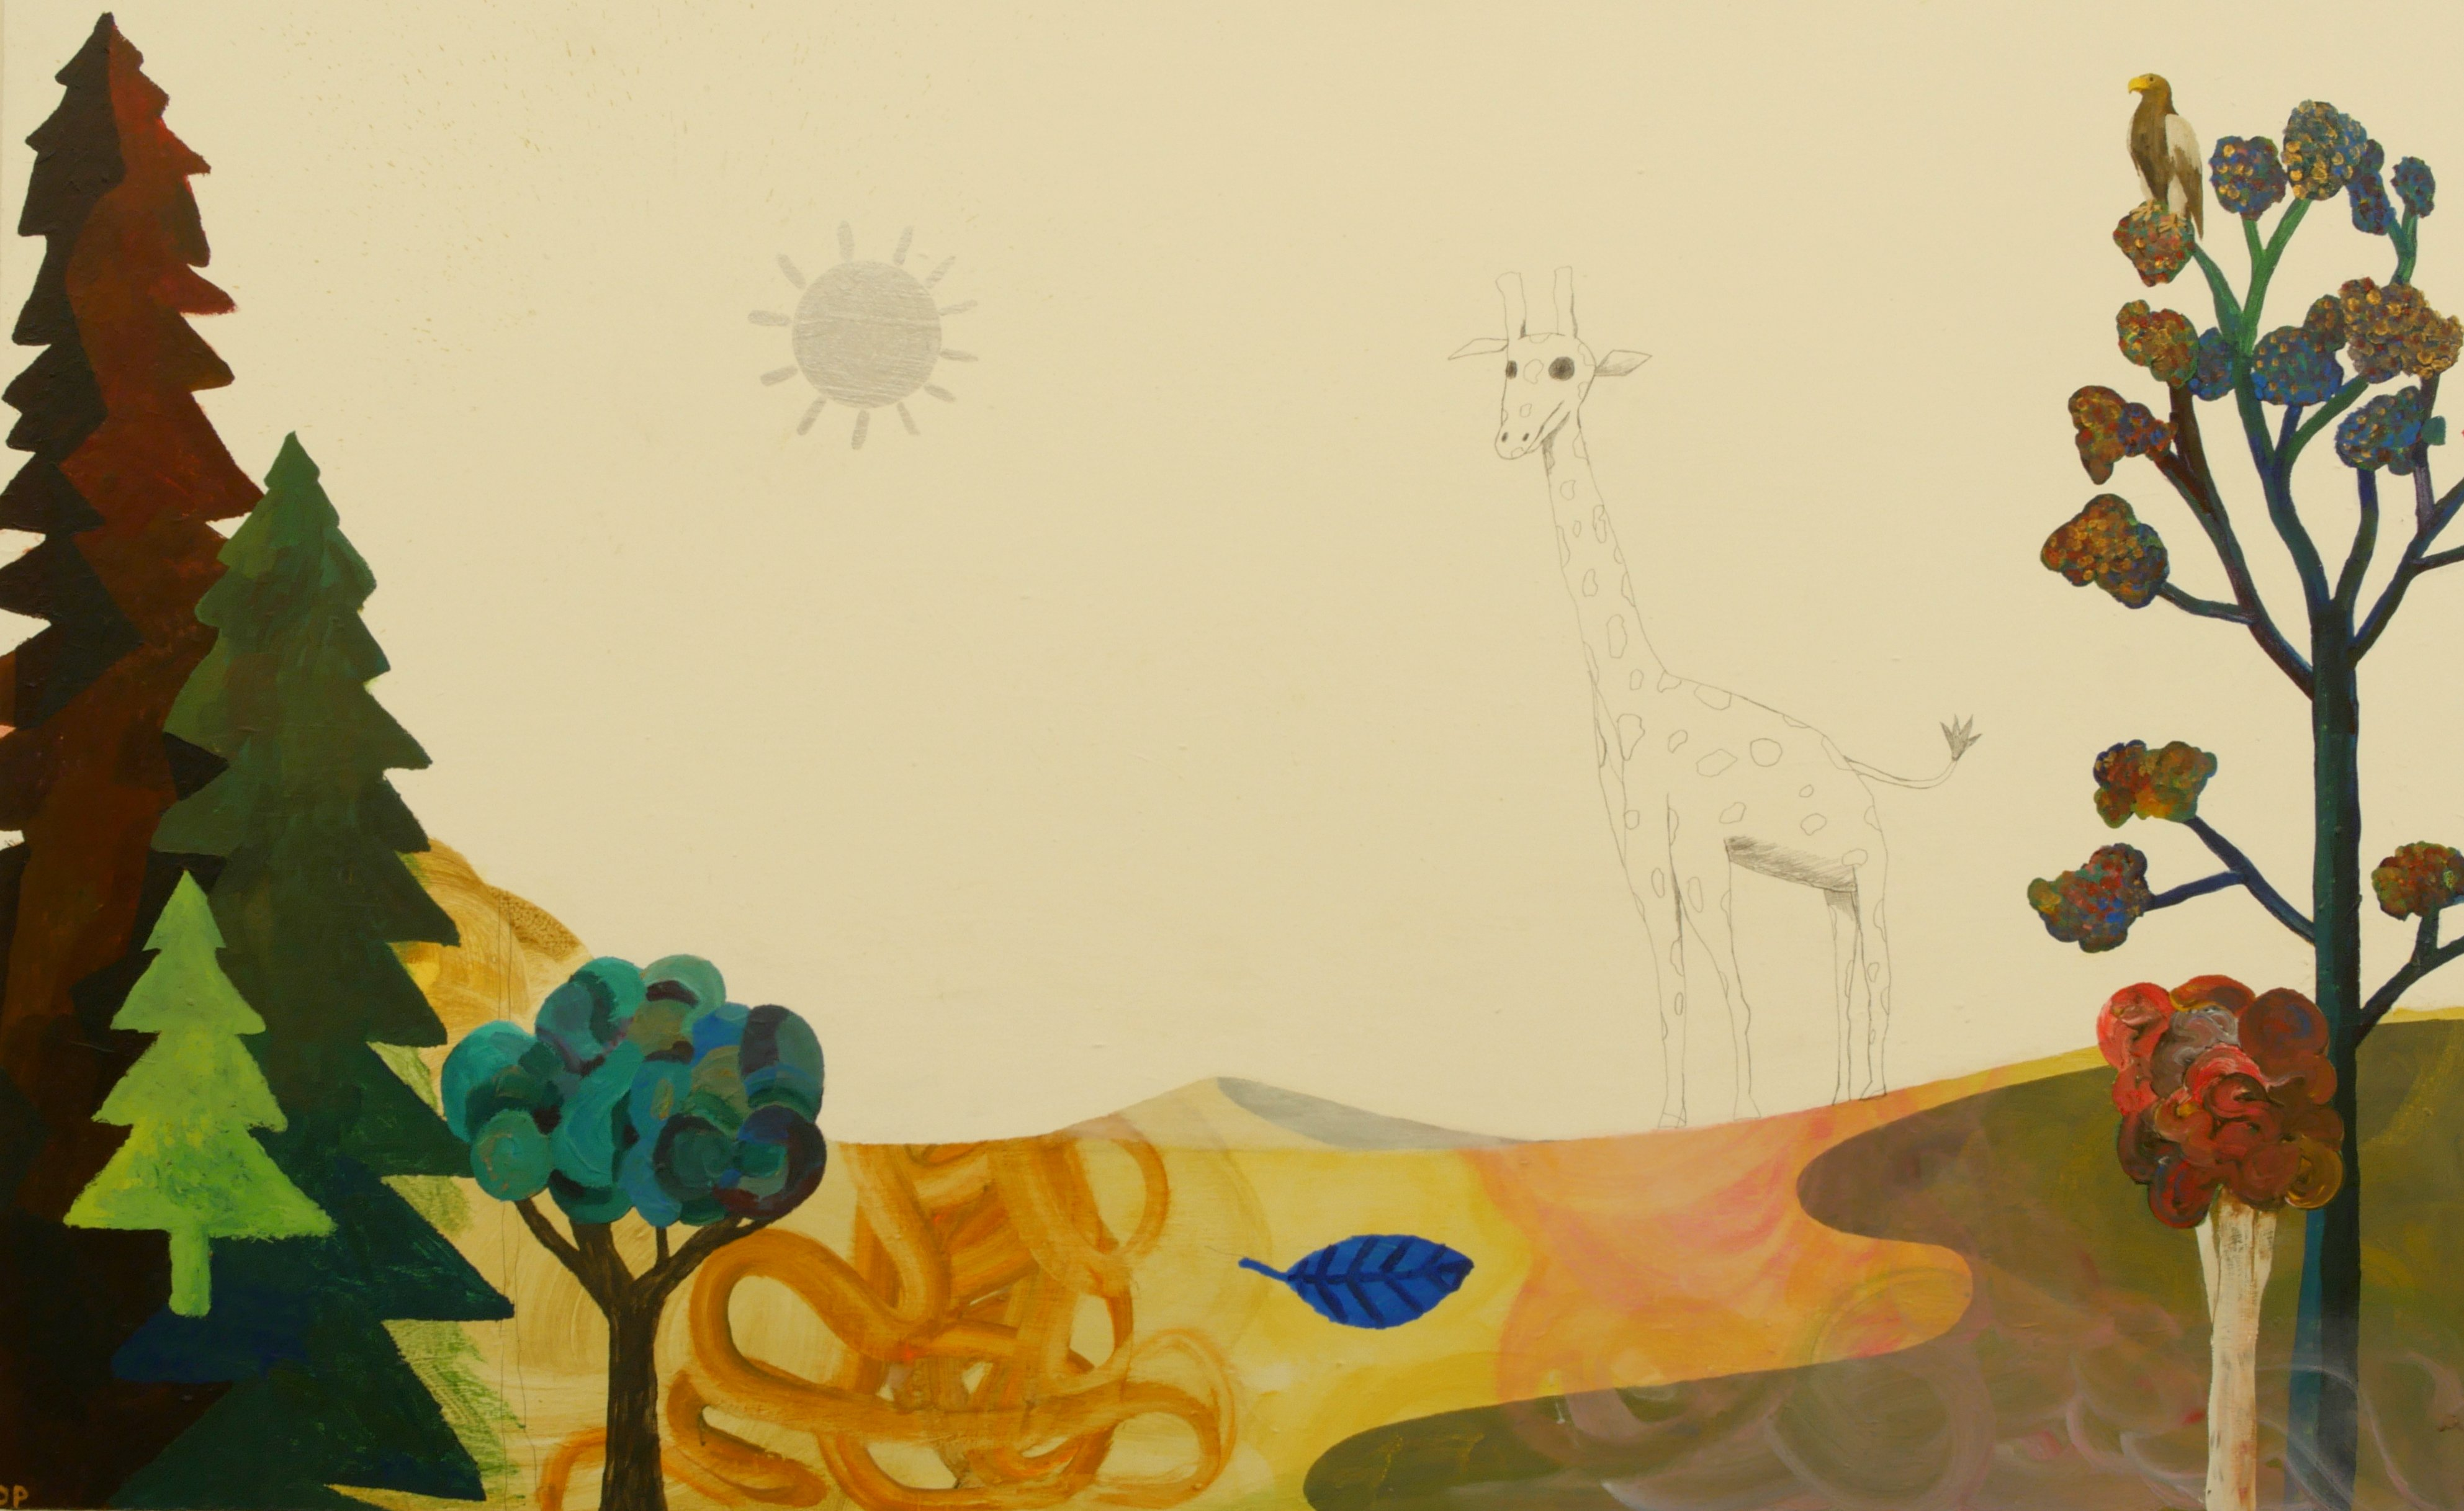 Dan Perrin, The Giraffe and the sun, 2014, oil on panel, 150 x 200 cm